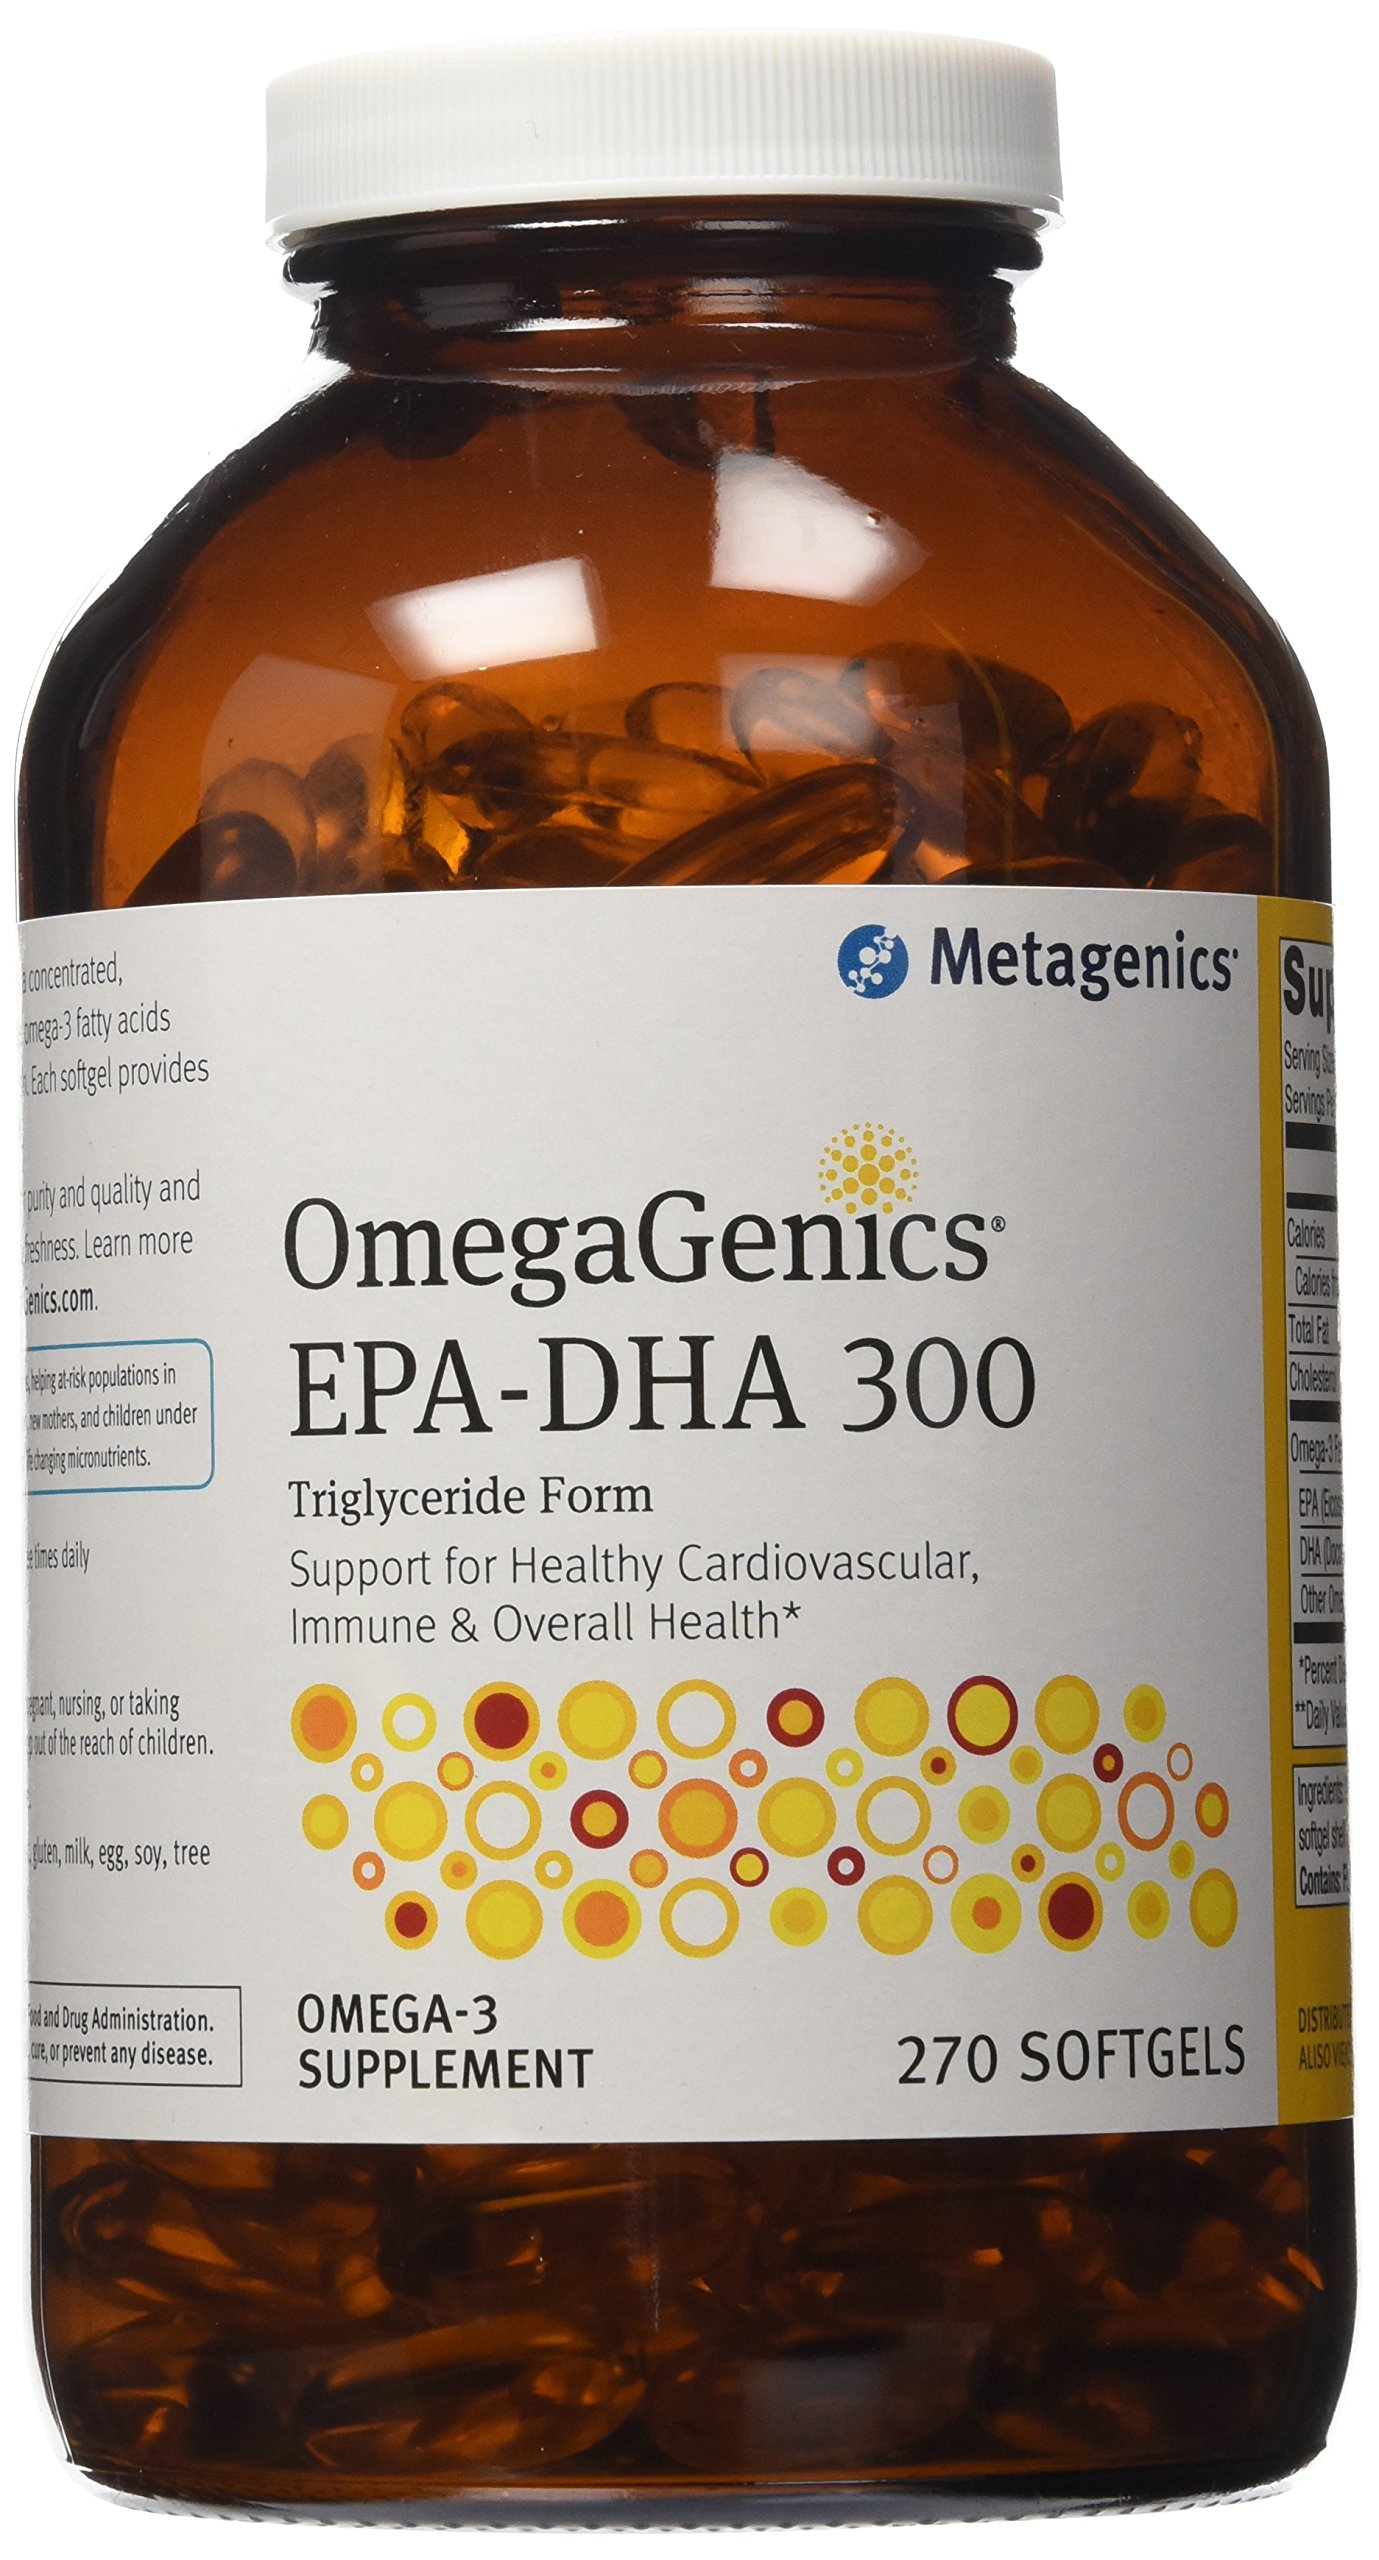 Metagenics EPA-DHA Complex Dietary Supplement, Omega-3, 270 Count